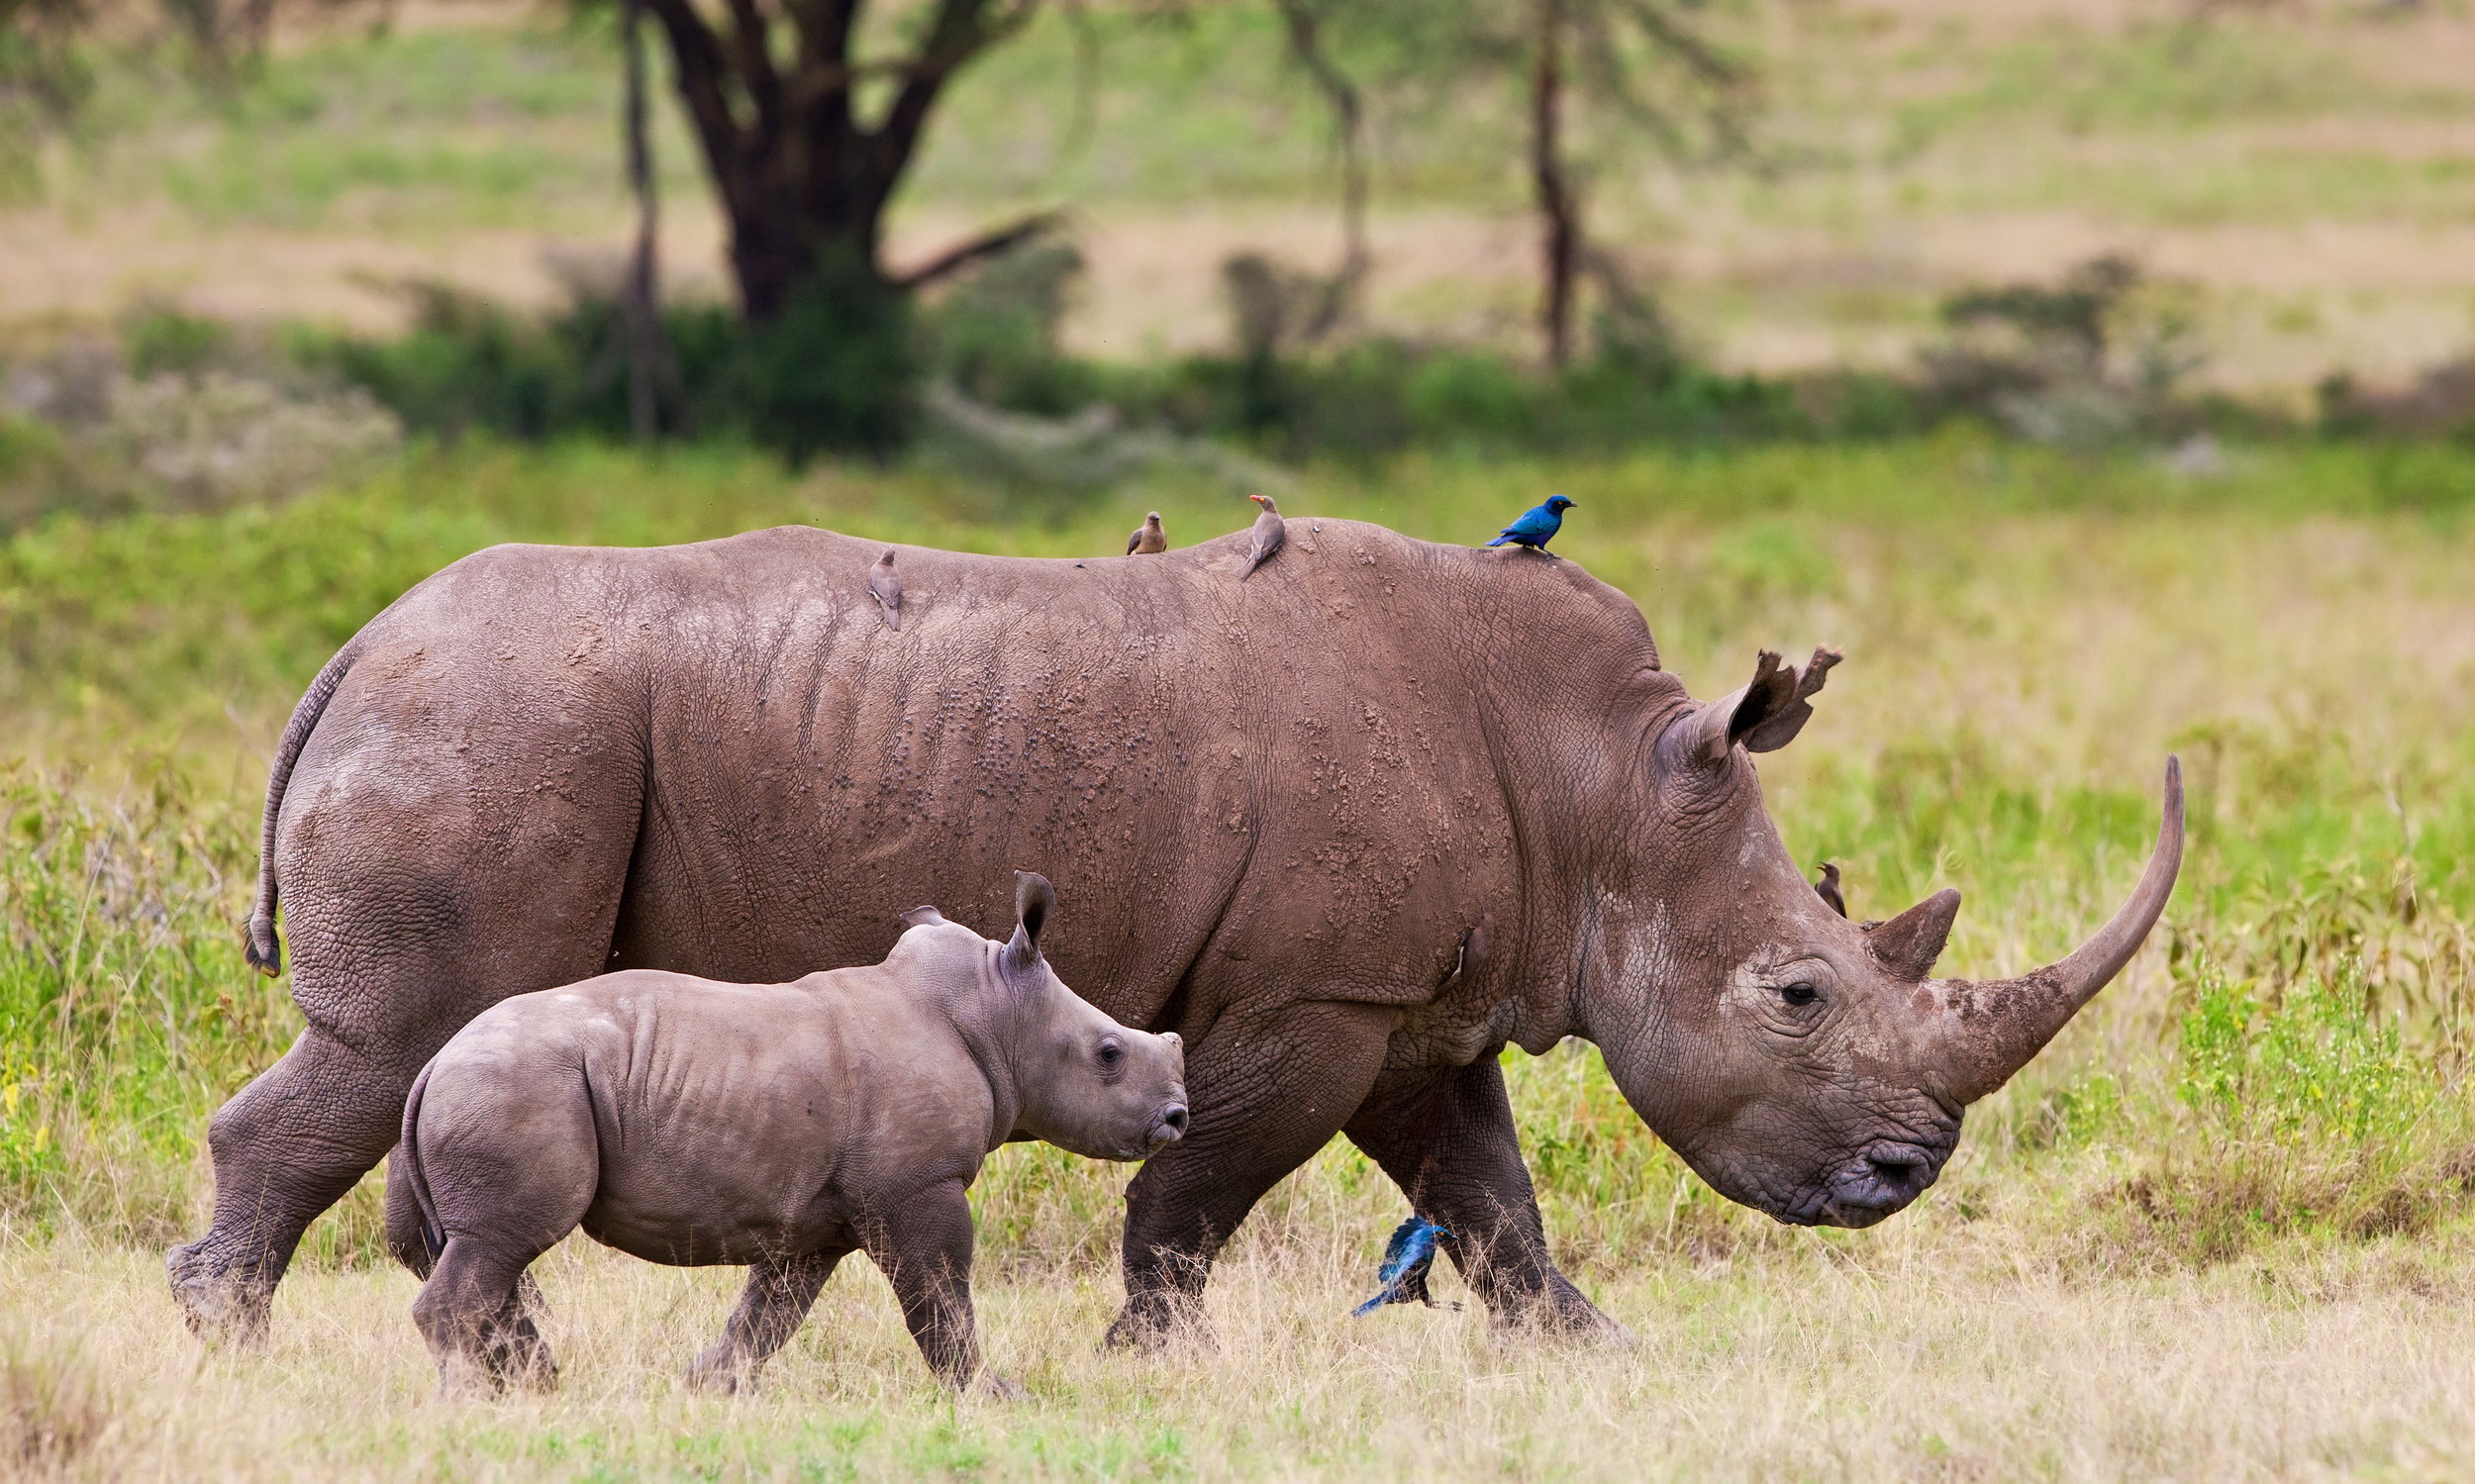 Image of rhino mother and baby walking together.